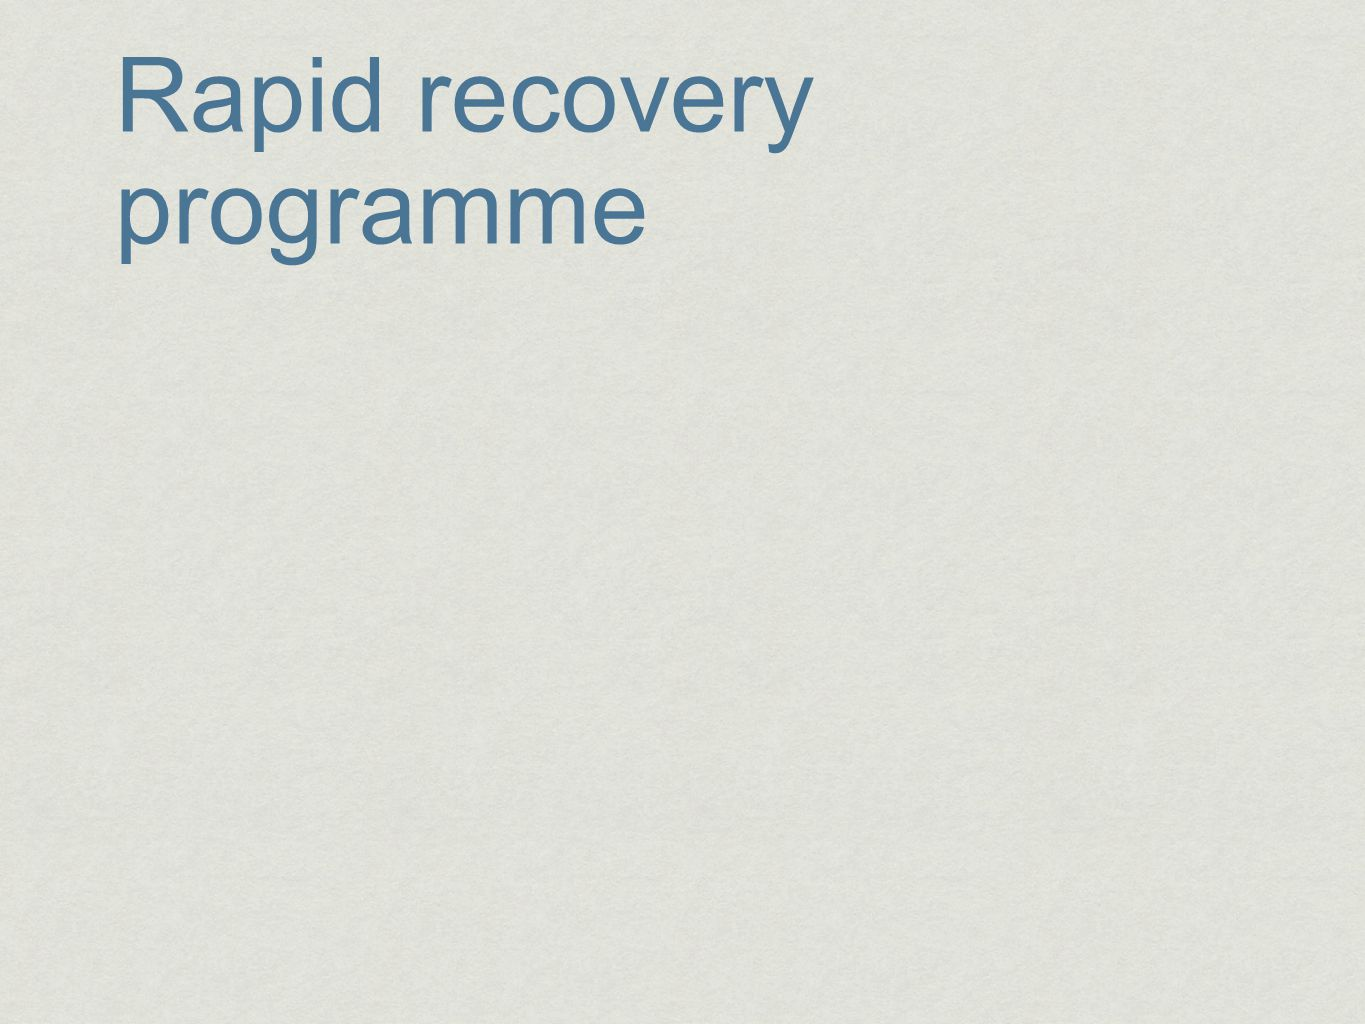 Rapid recovery programme